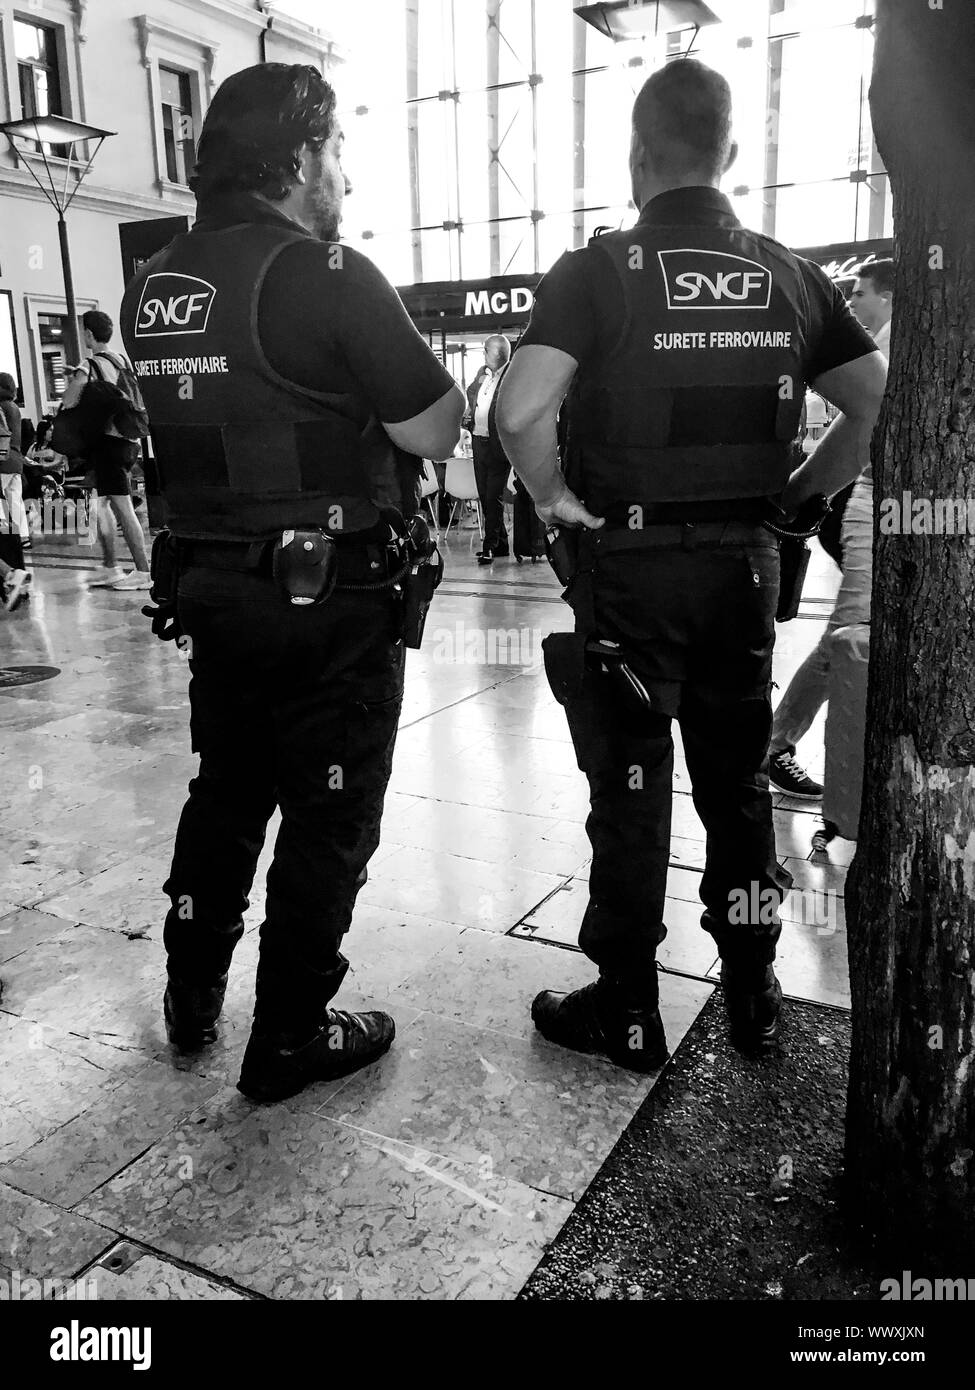 Railway police officers mount guard at Sainy-Charle Station, Marseille, Bouches-du-Rhône, PACA, France Stock Photo